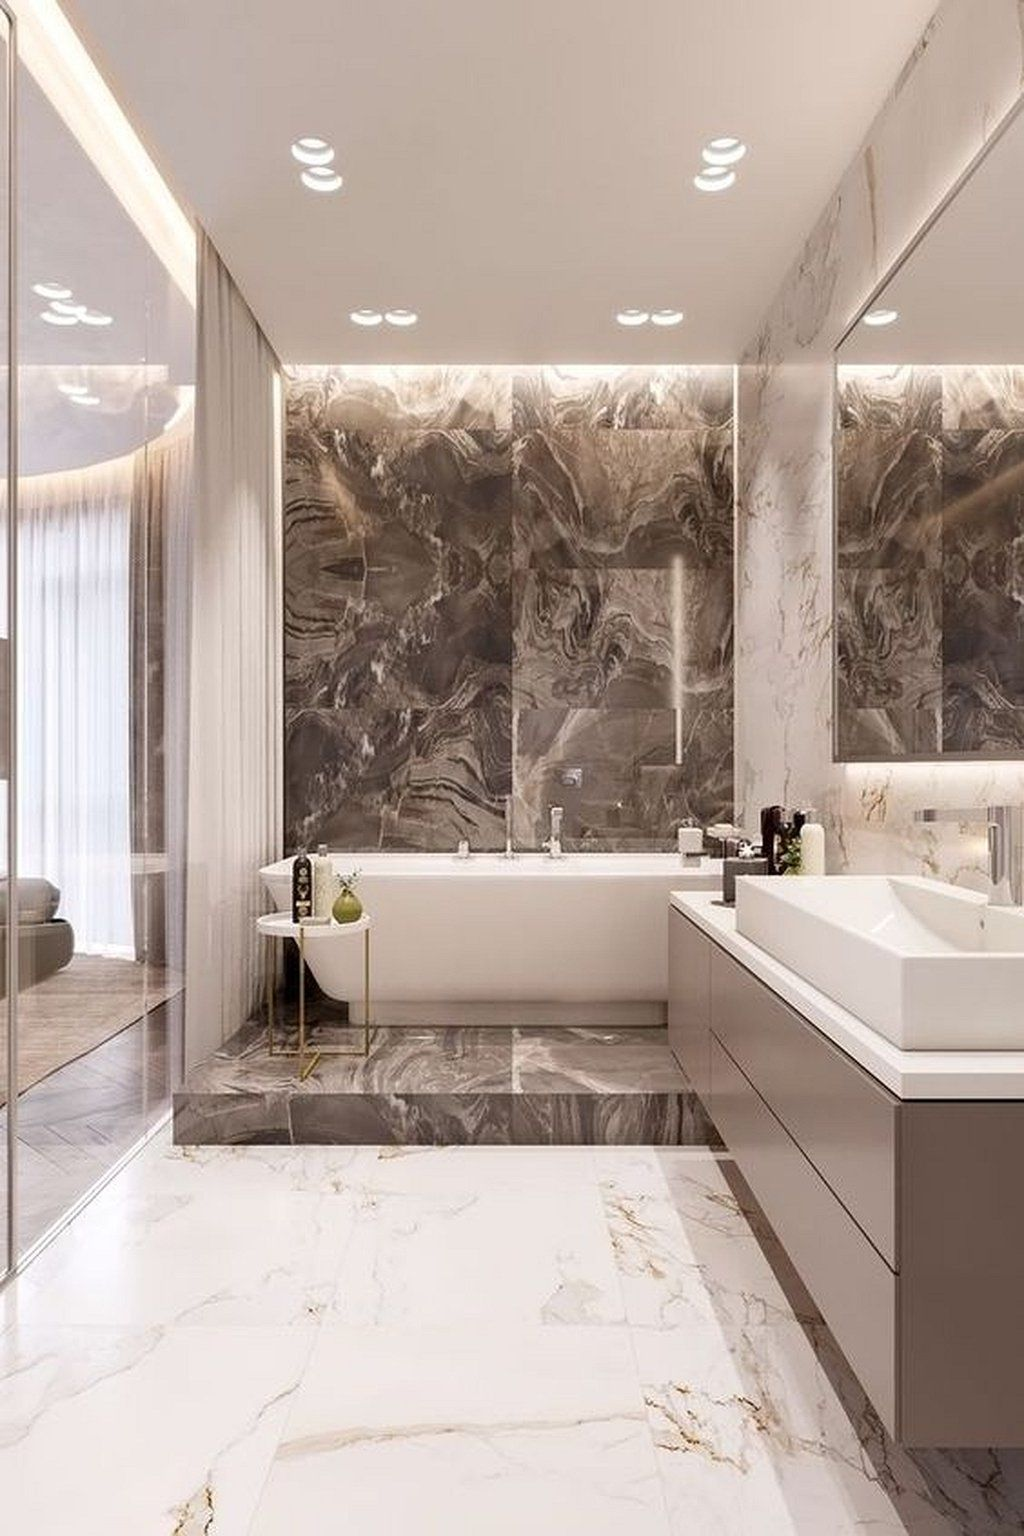 Bathroom inspiration modern small ideas also remodel you must see for your lovely home dream rh pinterest